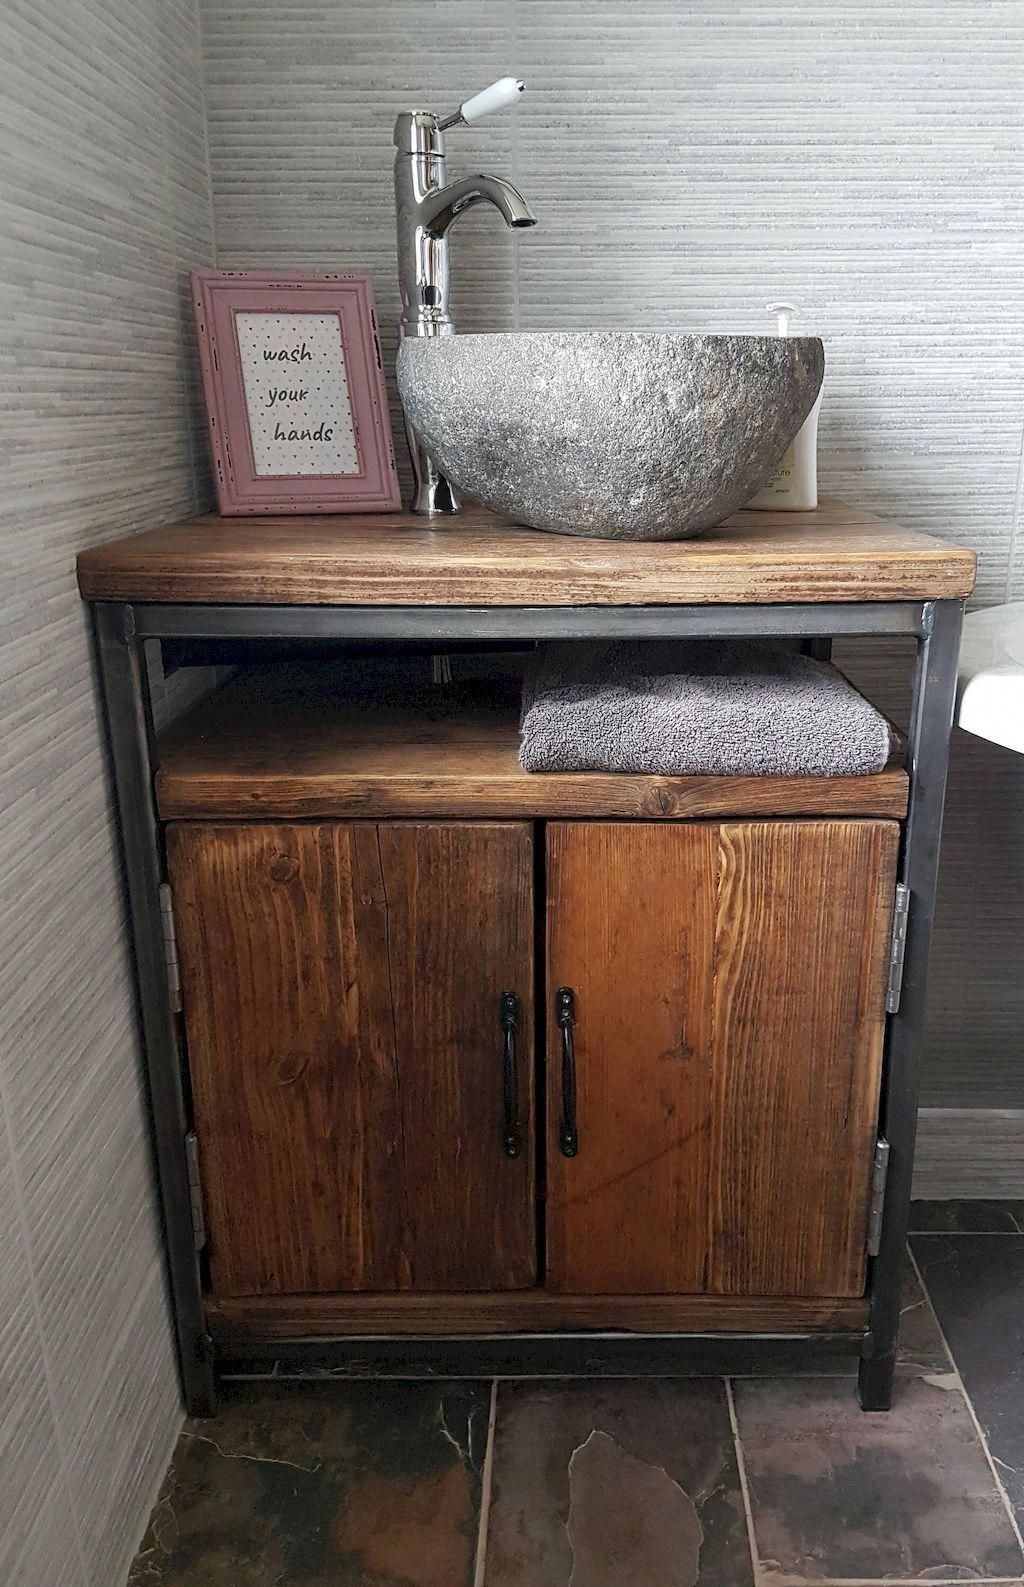 Bathroom Design Decor 7 Great Ideas For Your Bathroom Remodel Wooden Bathroom Rustic Bathroom Vanities Bathroom Furniture